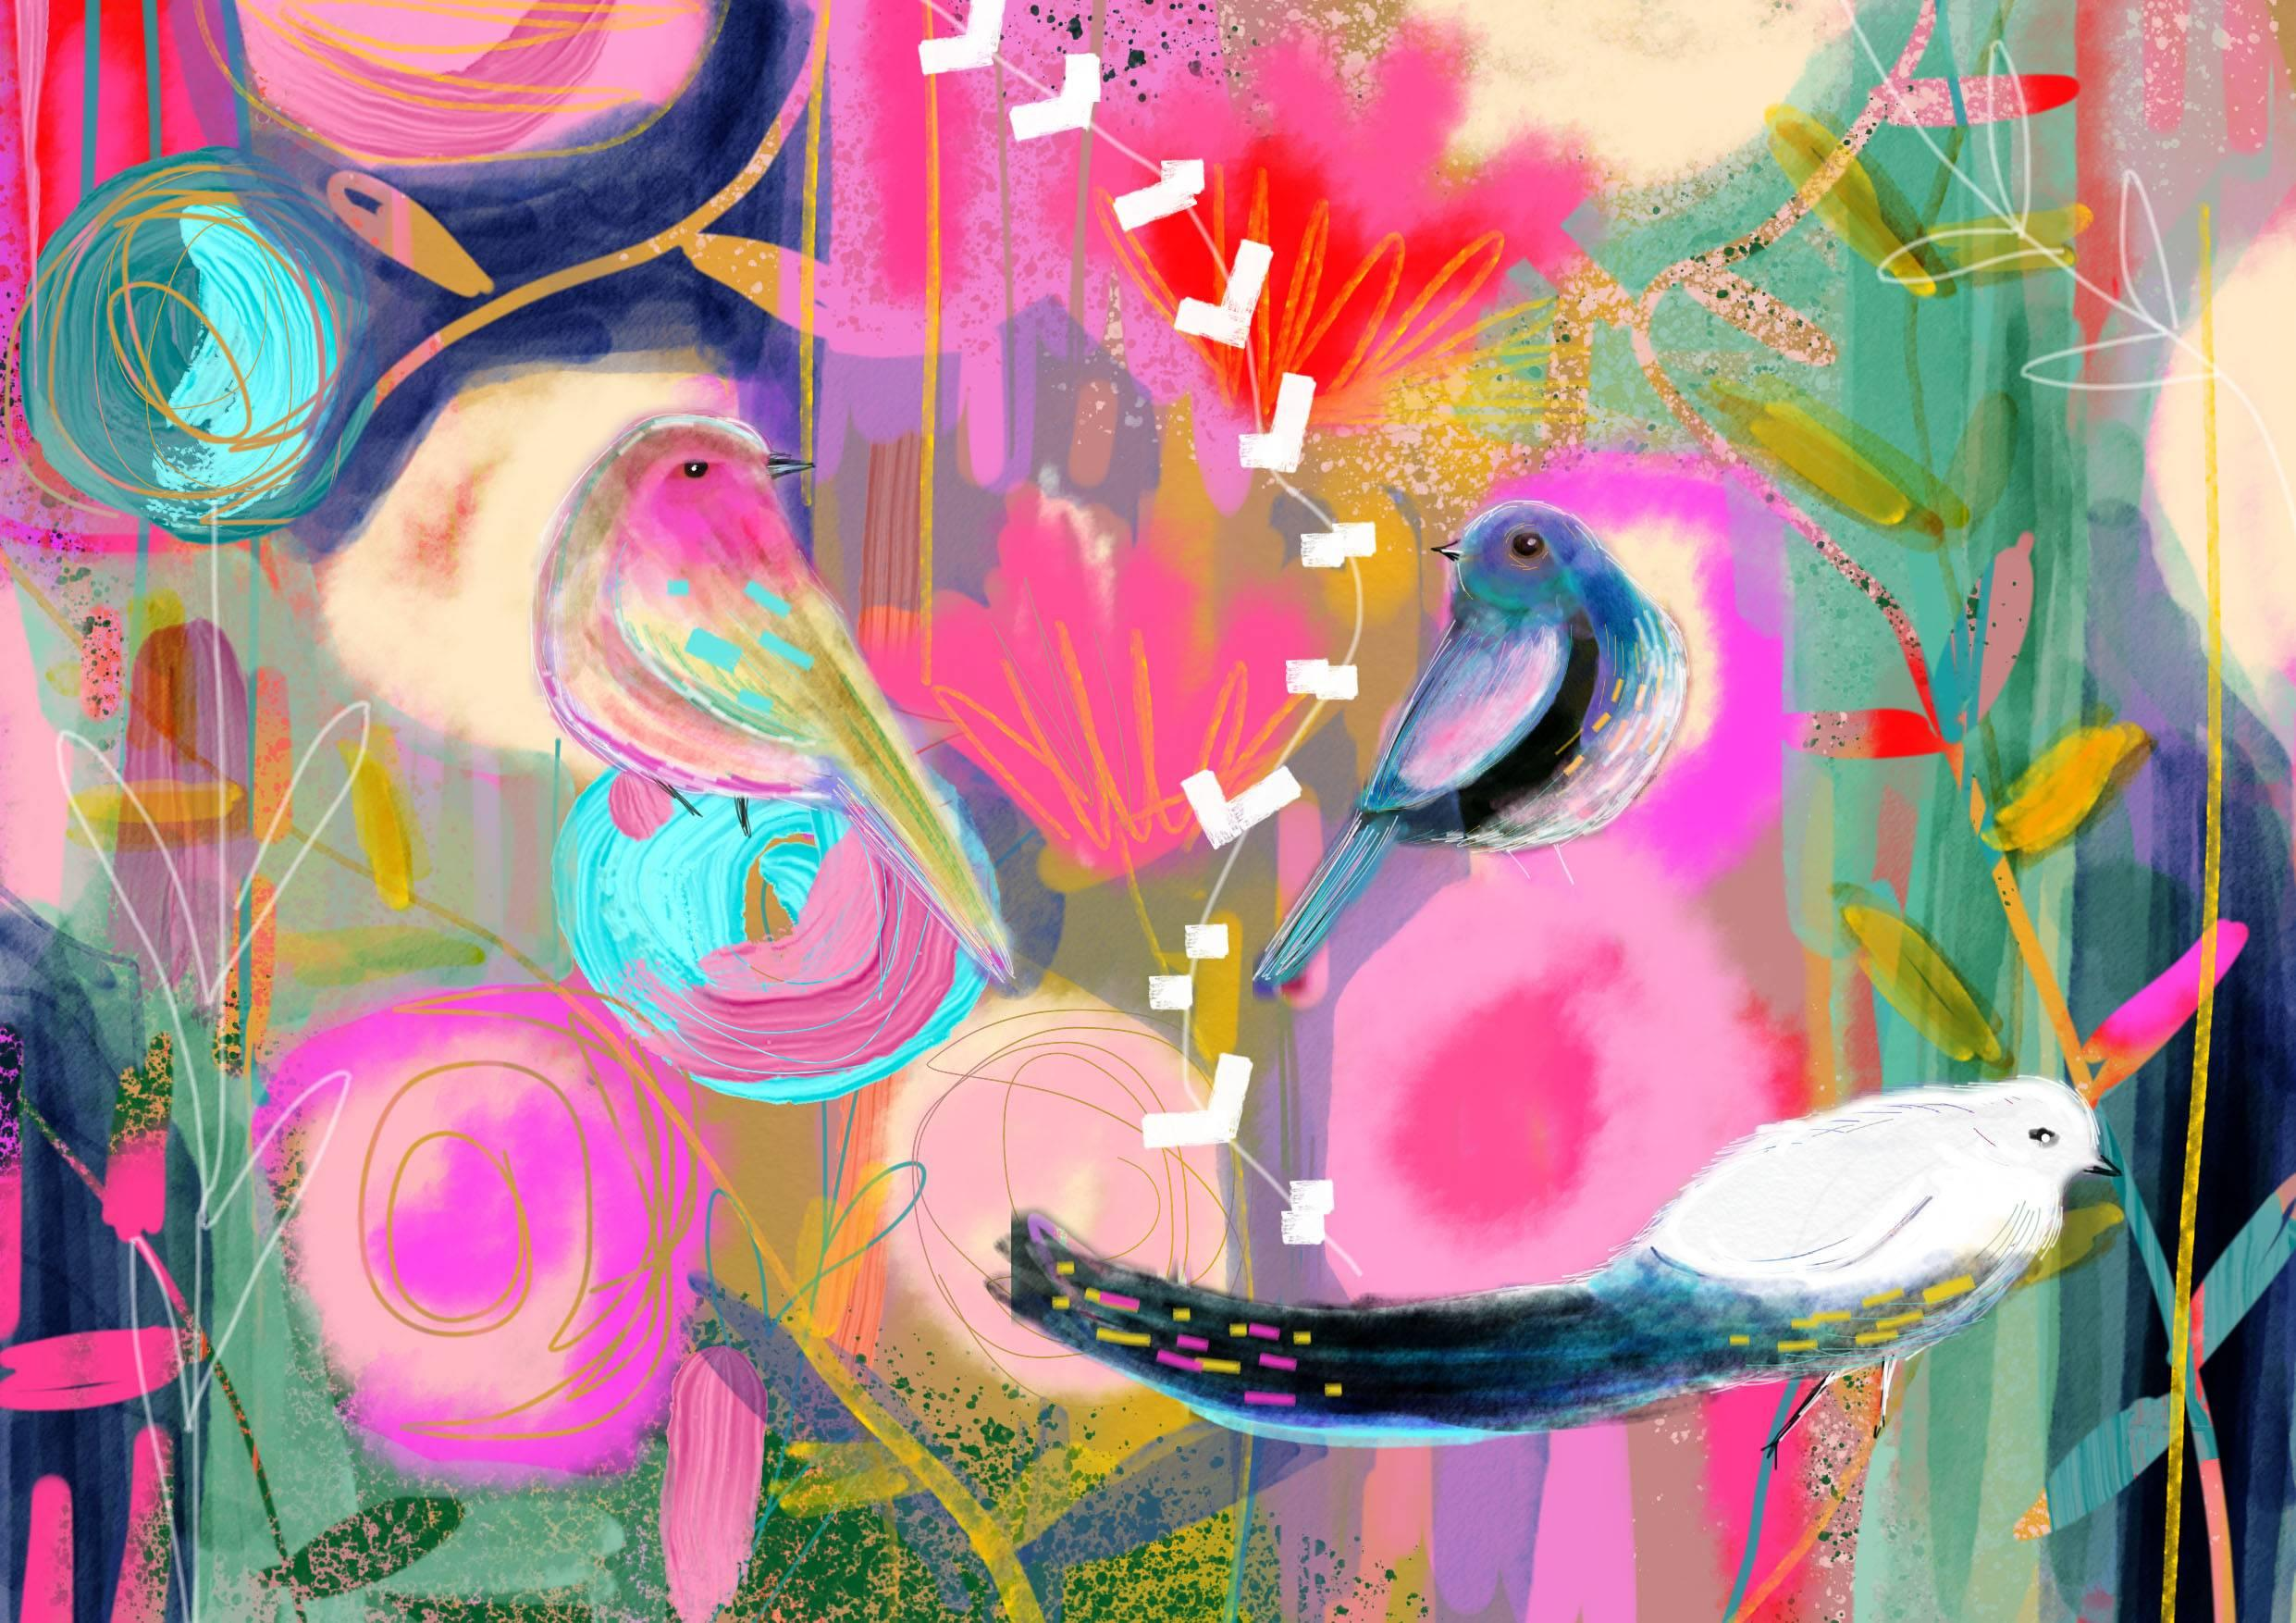 Floral Journey, Digital Print Limited Edition of 20, Bespoke Diamond Dust Signed